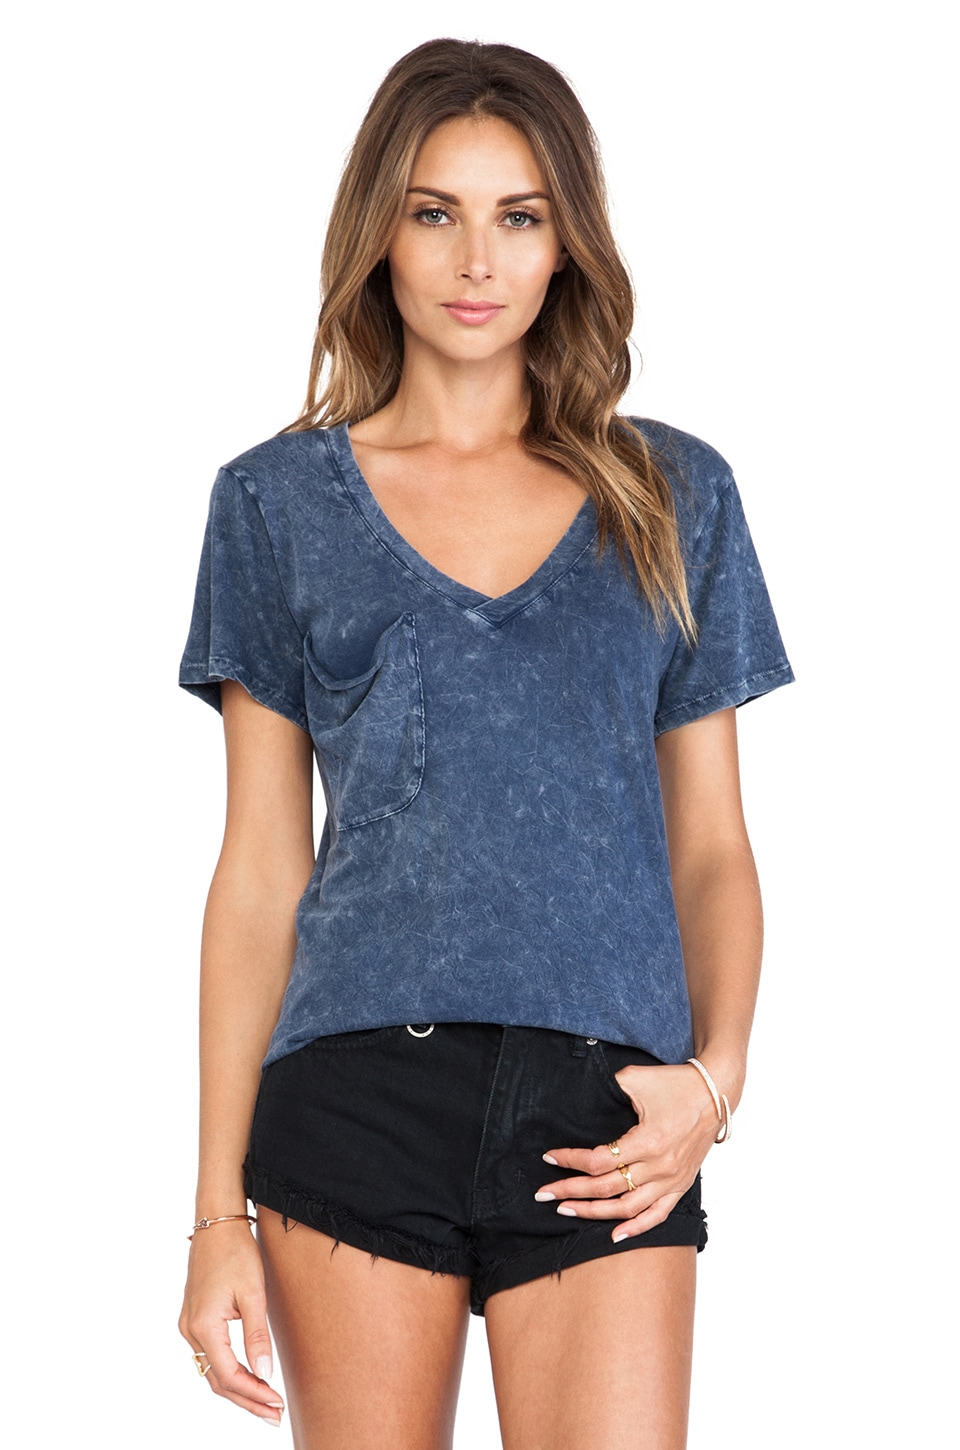 Bobi Denim Wash Jersey Pocket Tee in Denim